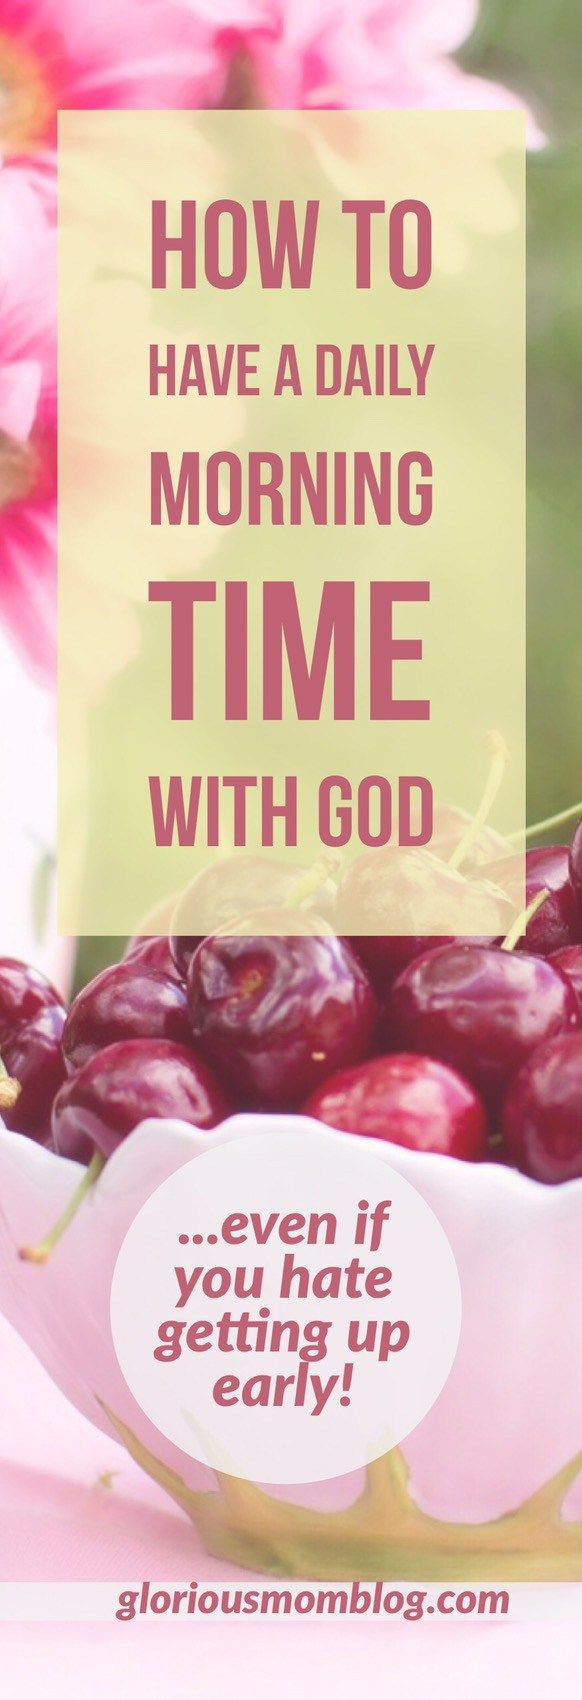 How a morning devotional time changed my life: discover how this non-morning person found rejuvenation in a daily quiet time with God - in the morning! Read about it at gloriousmomblog.com.